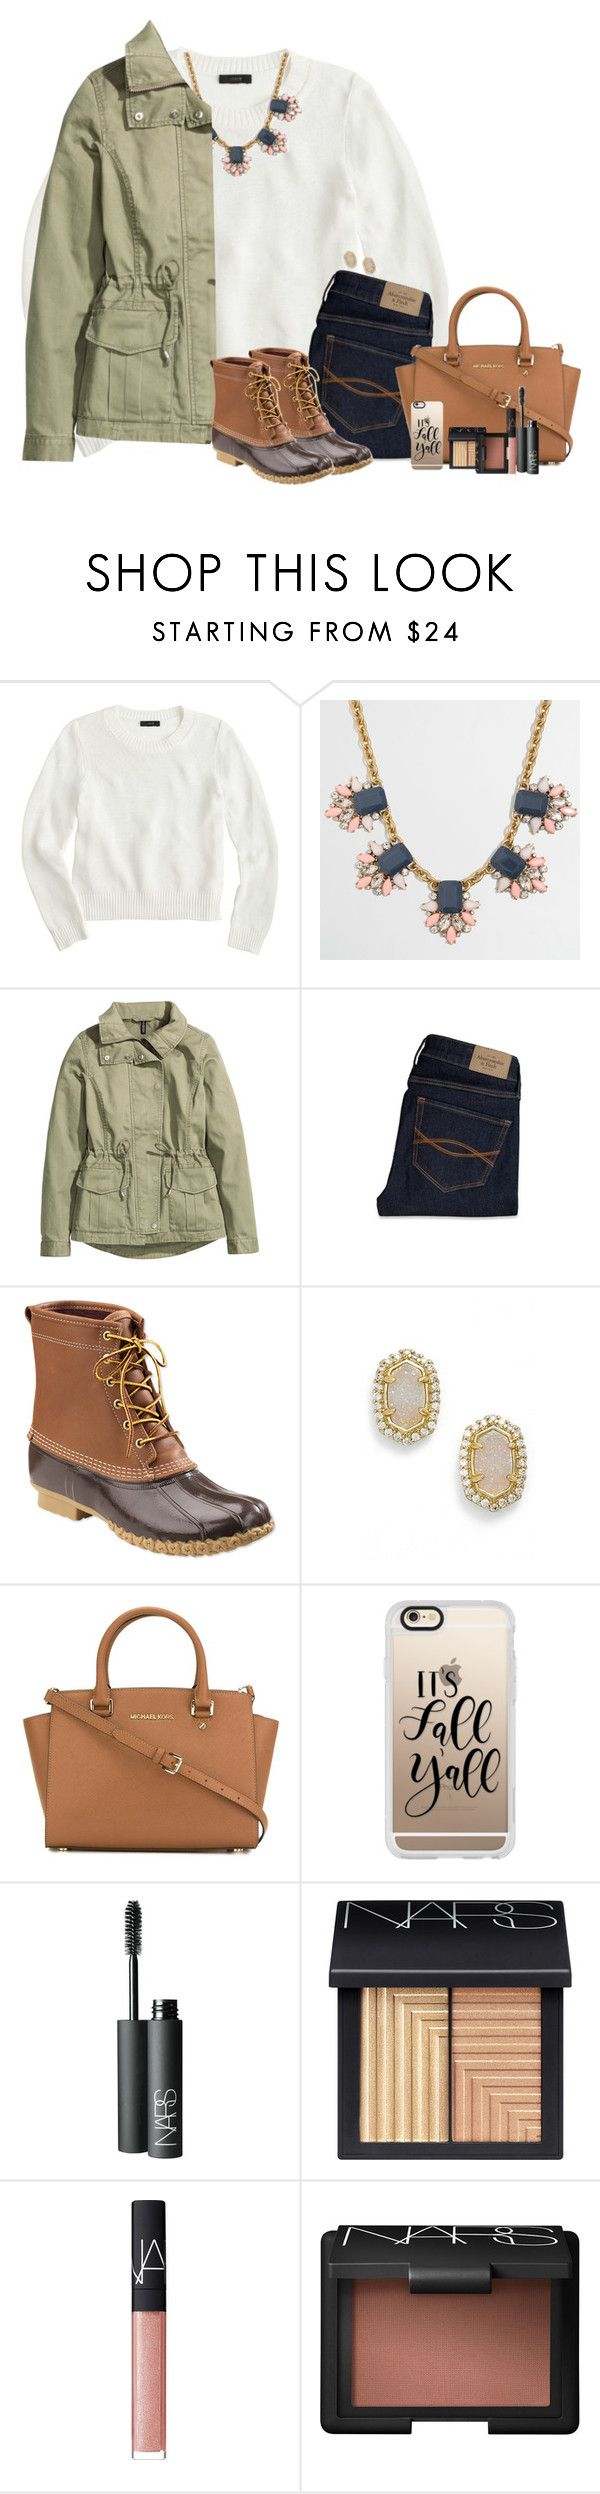 """""""Contest entry!!"""" by smiles-iv ❤ liked on Polyvore featuring J.Crew, H&M, Abercrombie & Fitch, L.L.Bean, Kendra Scott, MICHAEL Michael Kors, Casetify and NARS Cosmetics"""